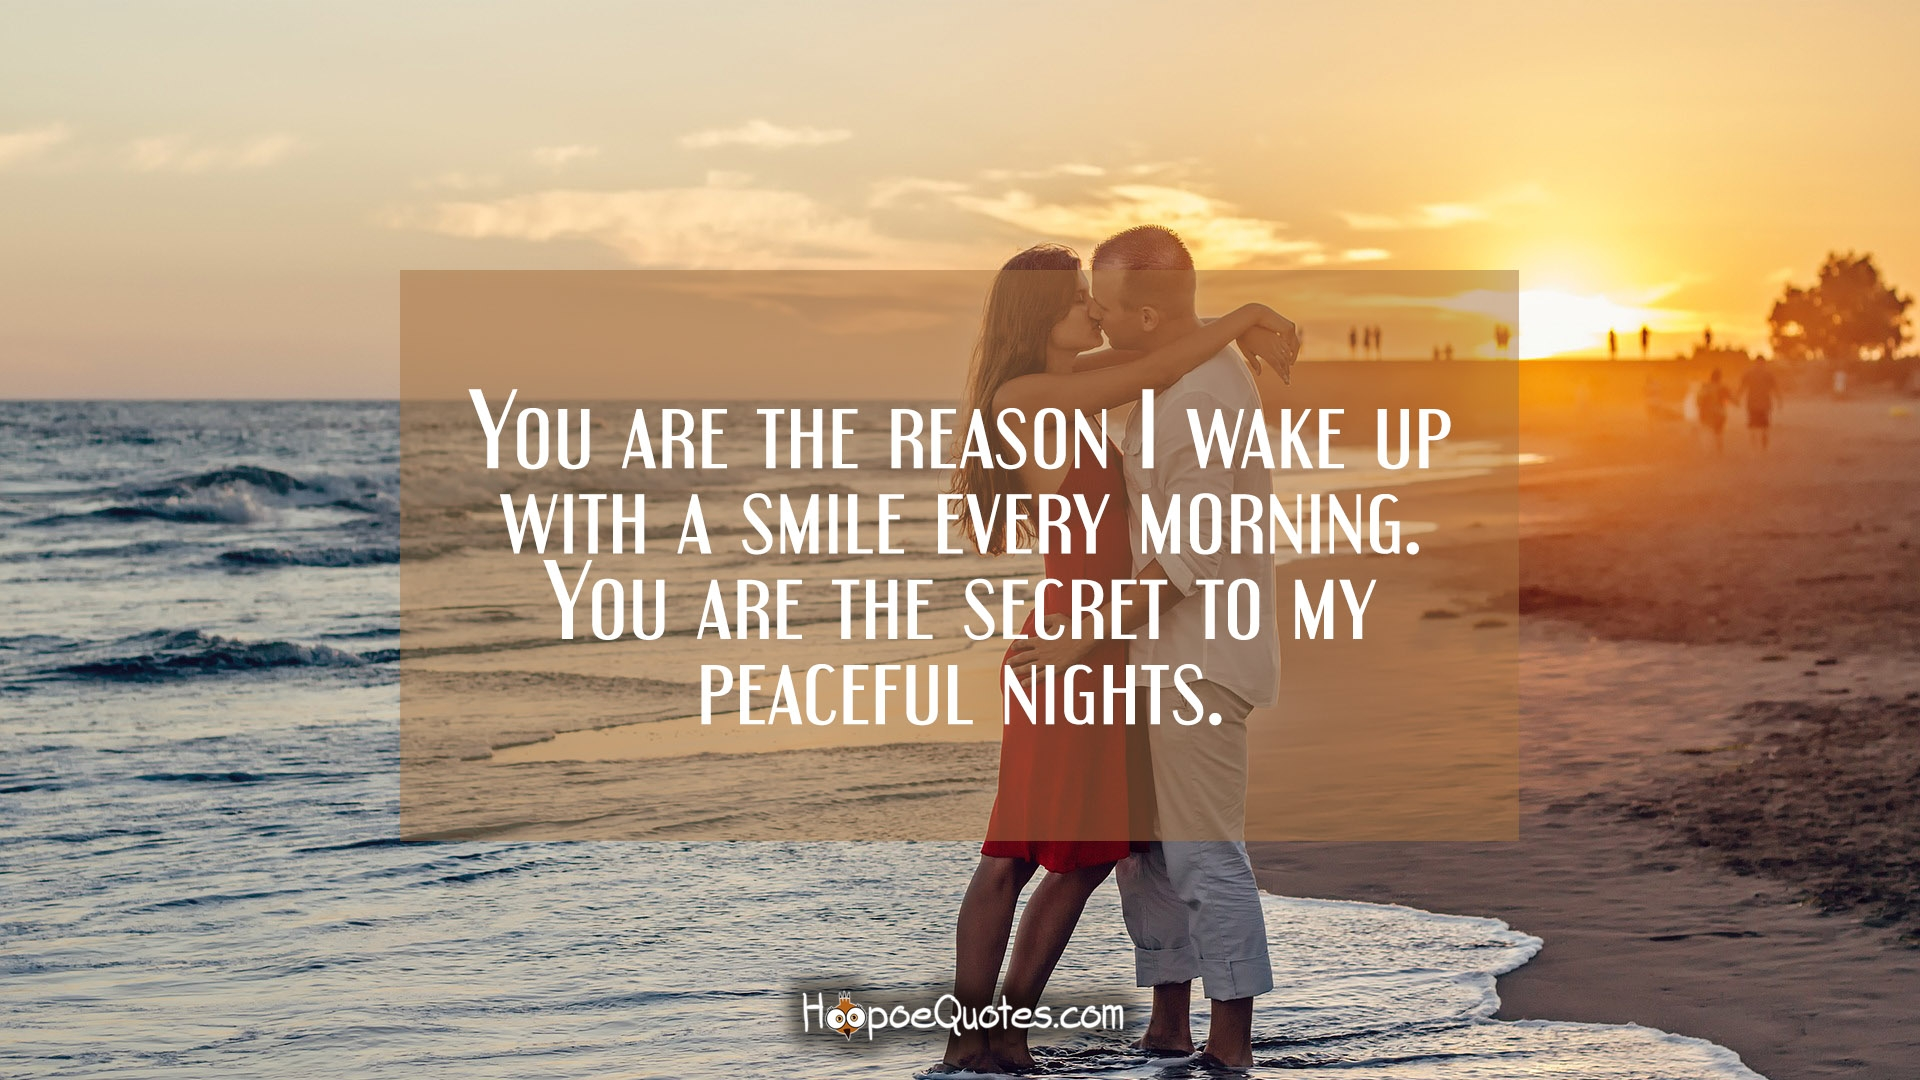 Morning Quotes For Loved Ones I Love You Messages  Hoopoequotes